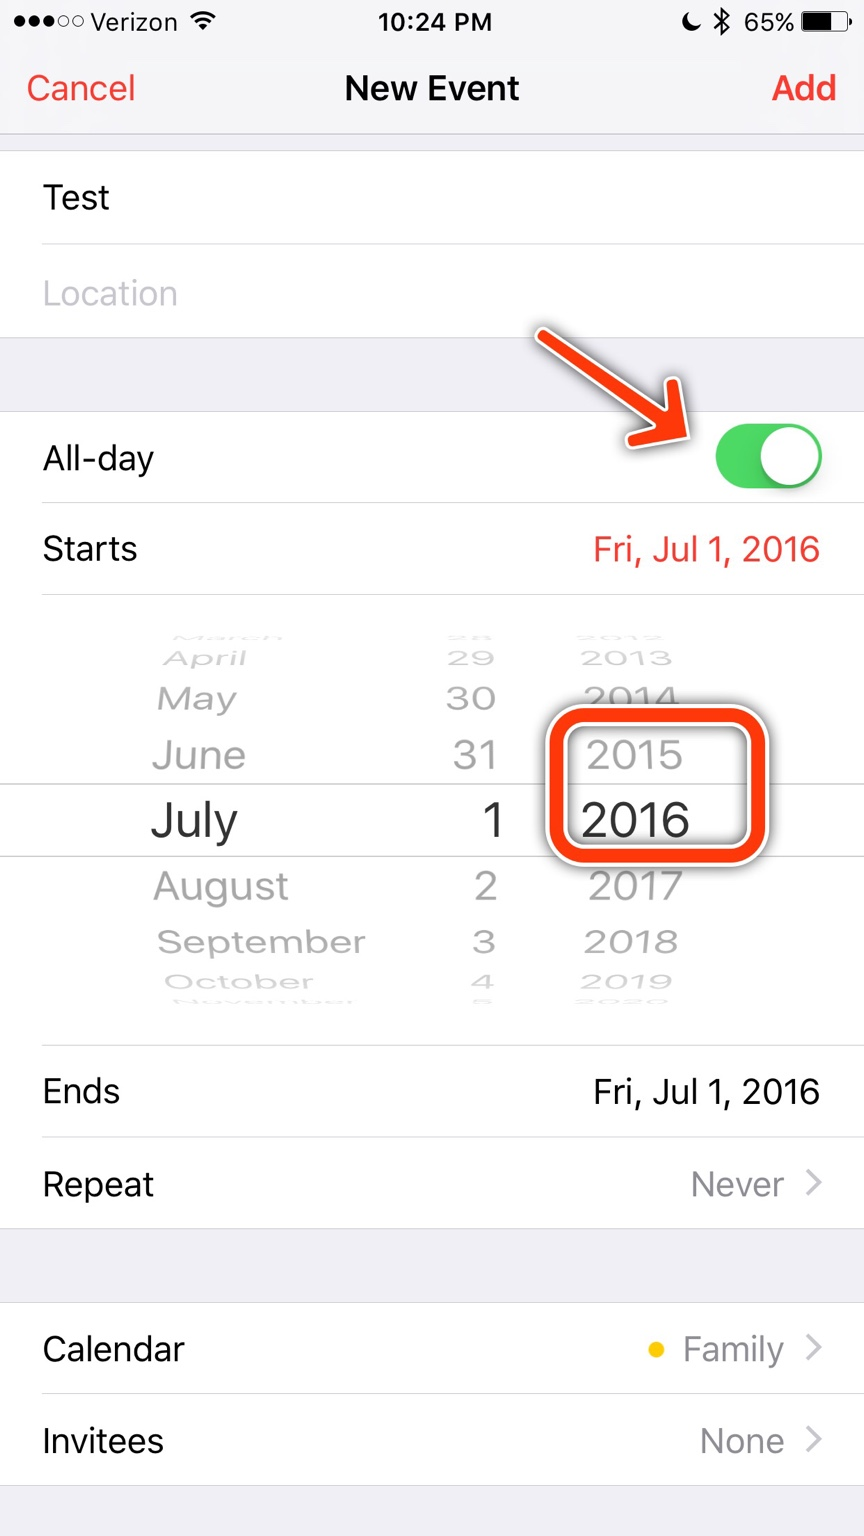 How can I change only the year on a calendar event